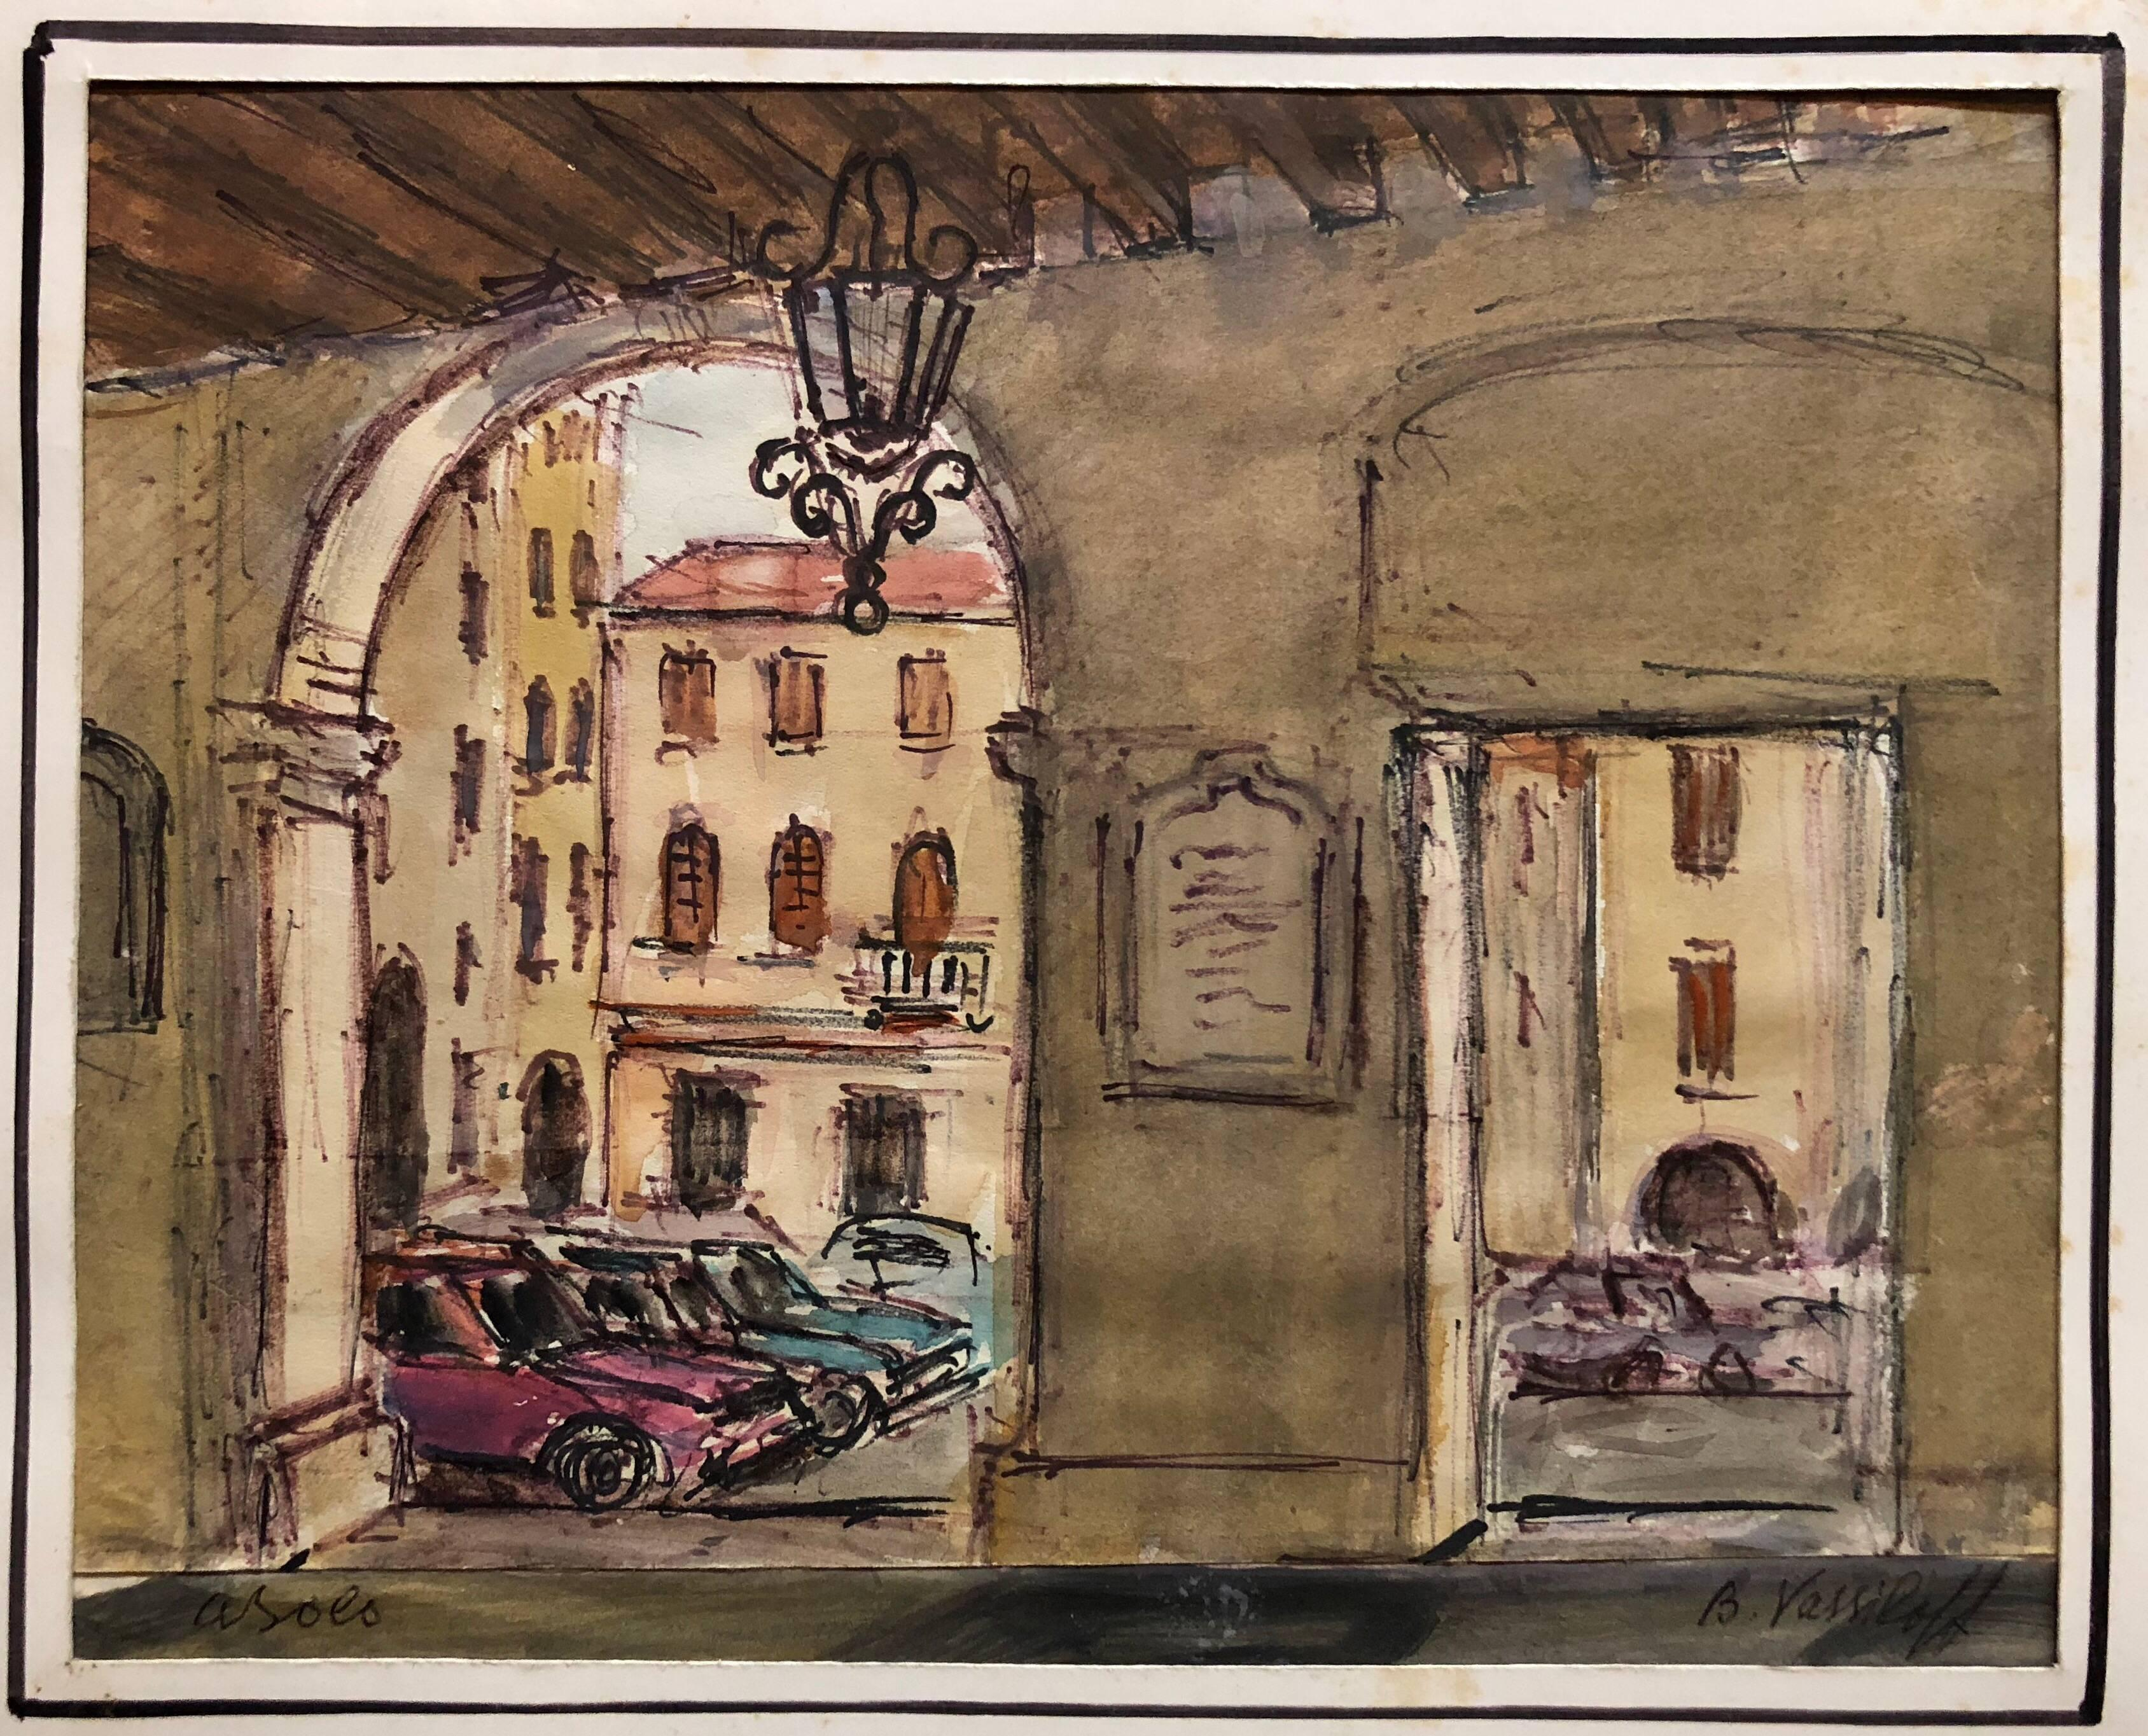 European Architectural Colonnaded Arcade Watercolor Painting